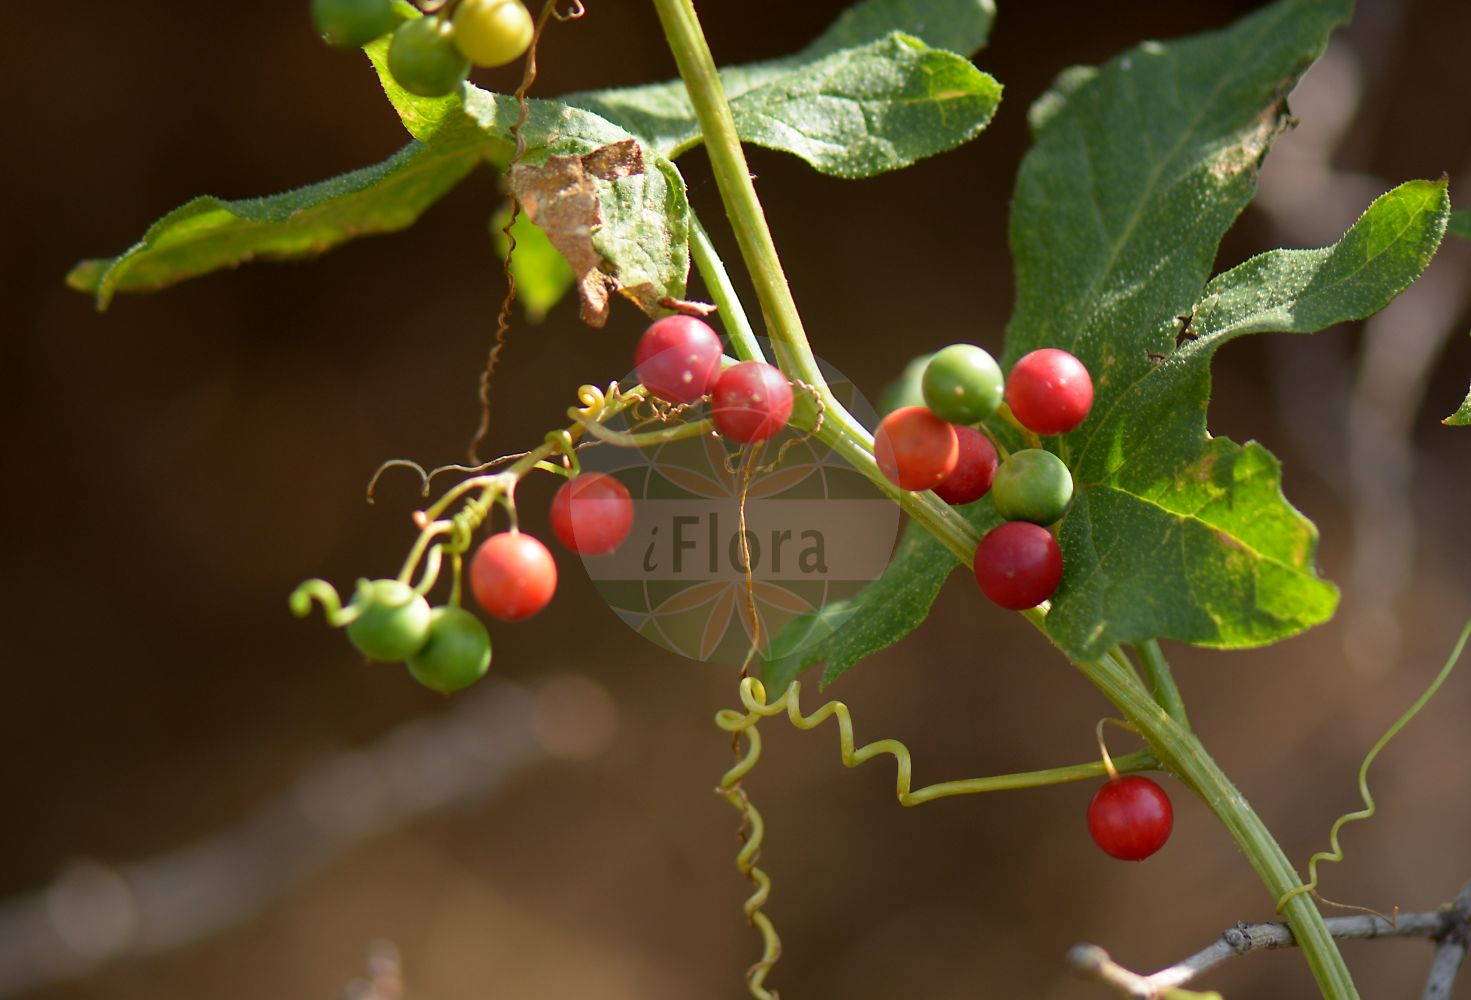 Foto von Bryonia dioica (Rotfruechtige Zaunruebe - White Bryony). Das Bild zeigt Blatt und Frucht. Das Foto wurde in Sindlingen, Frankfurt, Hessen, Deutschland, Oberrheinisches Tiefland und Rhein-Main-Ebene aufgenommen. ---- Photo of Bryonia dioica (Rotfruechtige Zaunruebe - White Bryony).The image is showing leaf and fruit.The picture was taken in Sindlingen, Frankfurt, Hesse, Germany, Oberrheinisches Tiefland and Rhein-Main-Ebene.(Bryonia dioica,Rotfruechtige Zaunruebe,White Bryony,Bryonia digyna,Bryonia sicula,Rotbeerige Zaunruebe,Rote Zaunruebe,Common Bryony,Cretan Bryony,Red-berried Bryony,Red-berry Bryony,Red Bryony,Bryonia,Zaunruebe,Bryony,Cucurbitaceae,Kuerbisgewaechse,Cucurbit family,Blatt,Frucht,leaf,fruit)